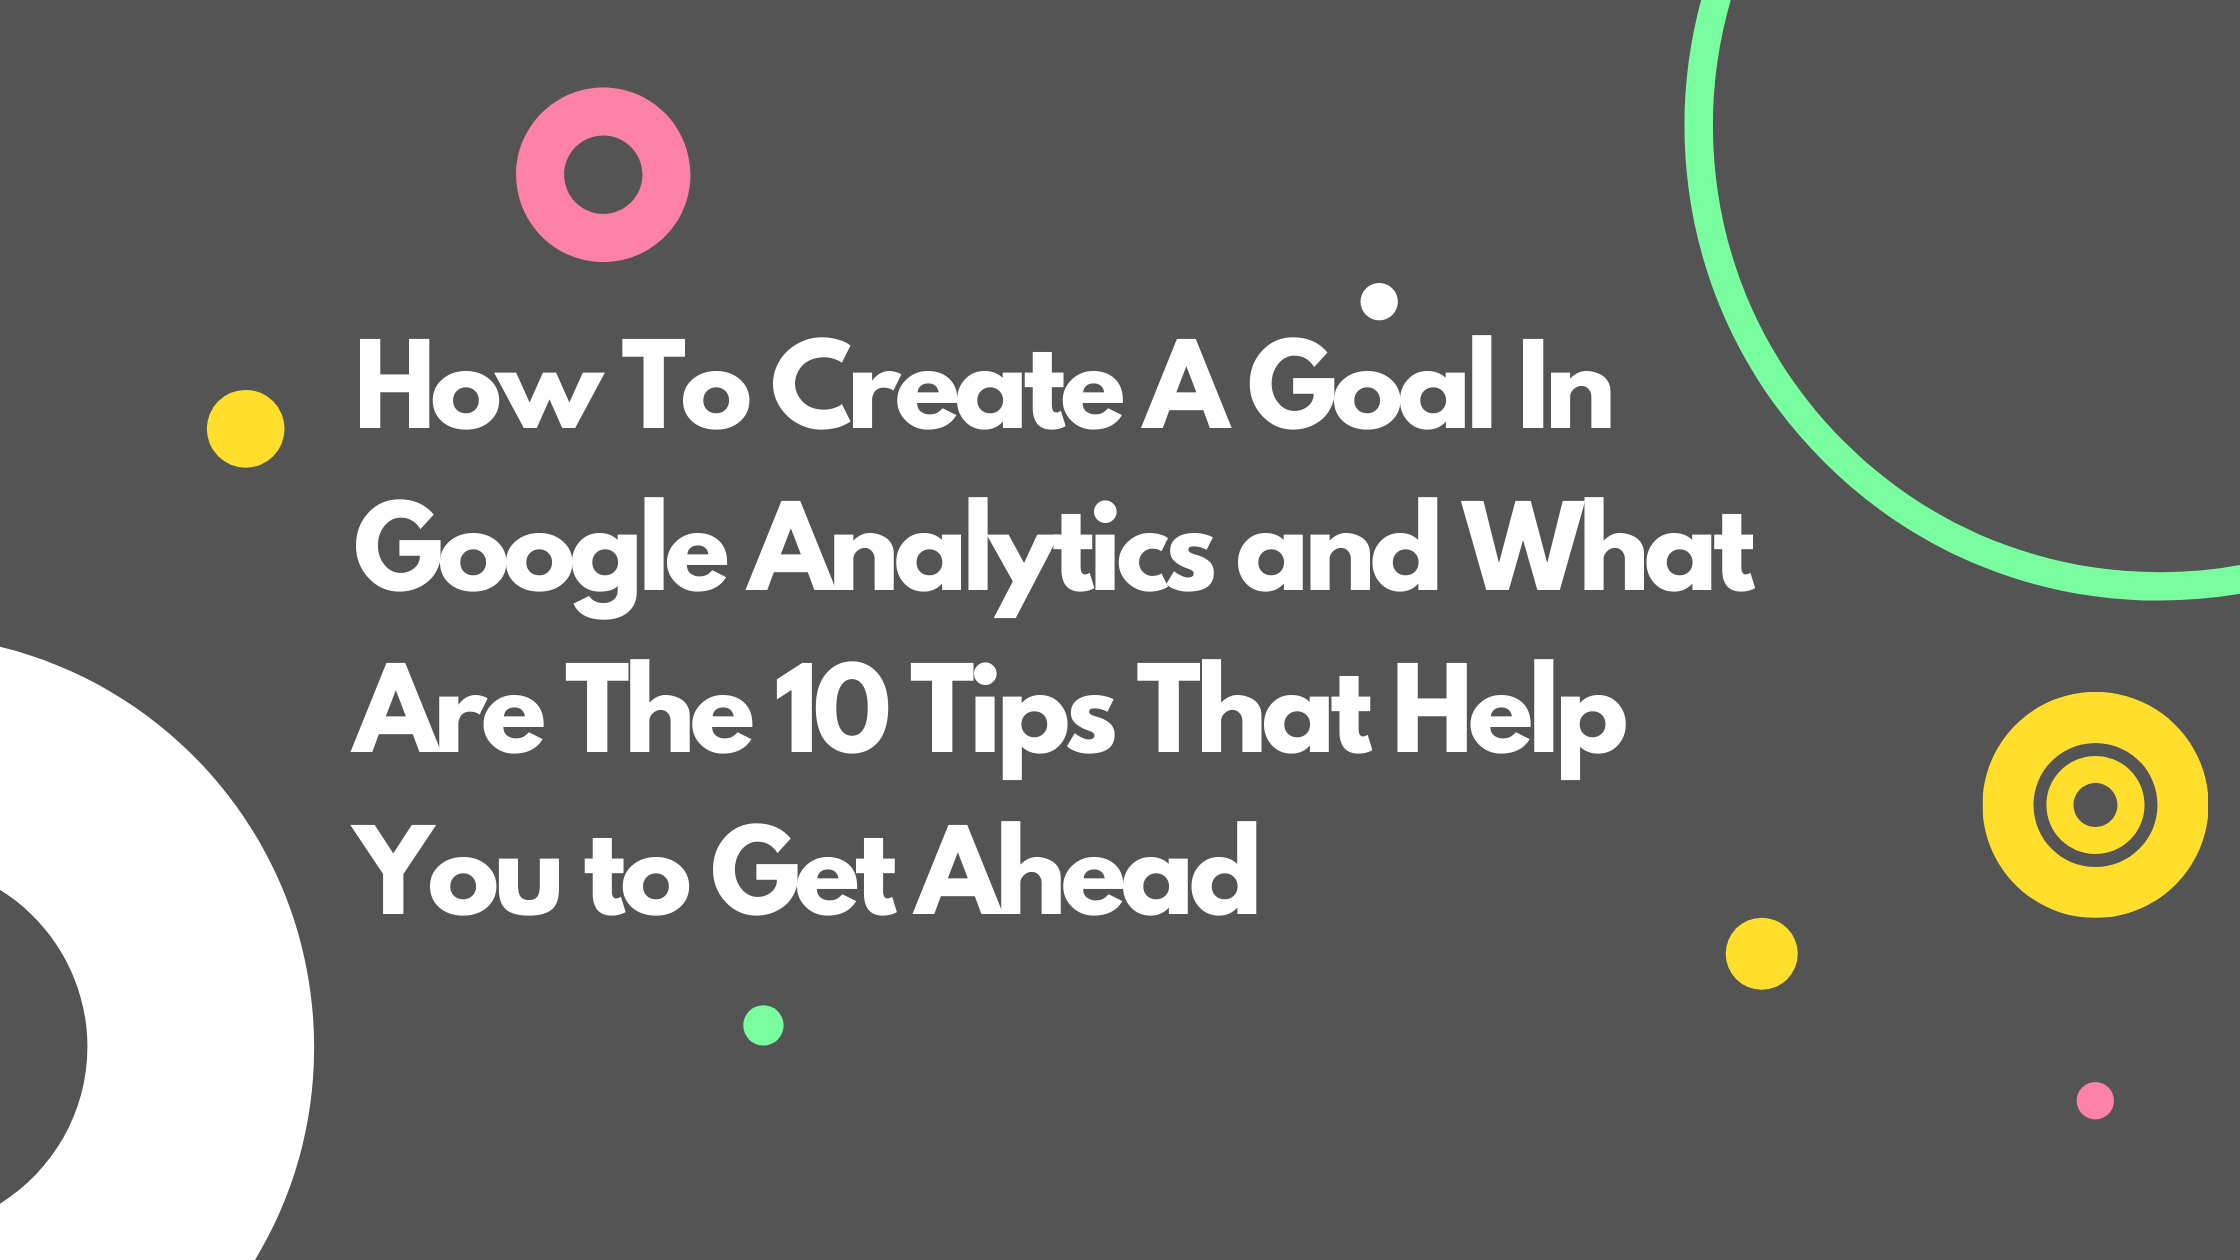 How To Create A Goal In Google Analytics and What Are The 10 Tips That Help You to Get Ahead